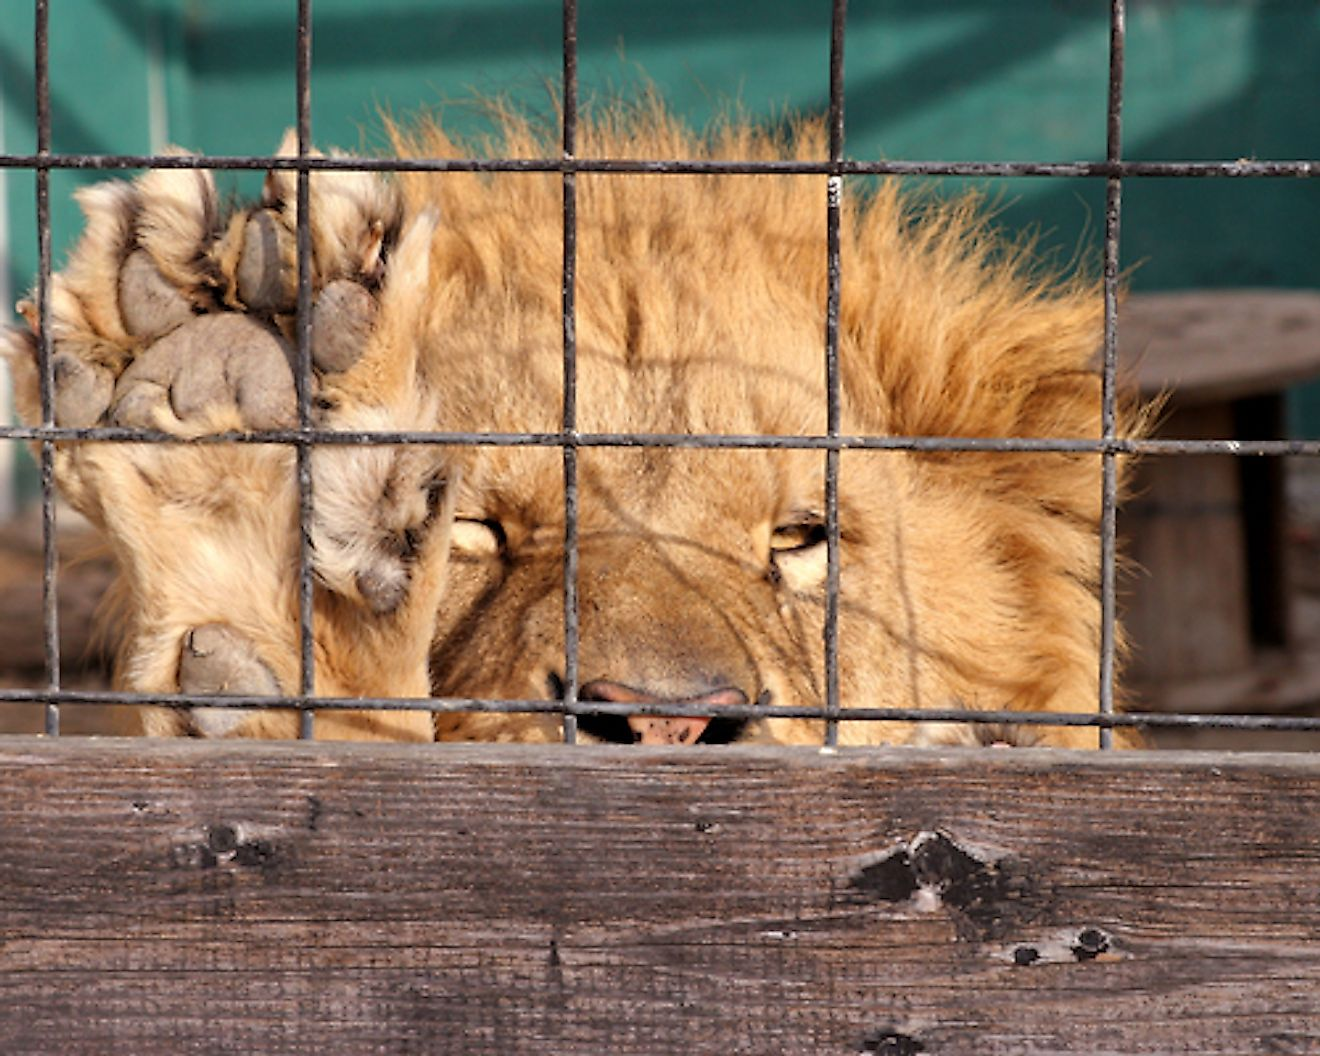 Canned hunting is a cruel sport subjecting animals to a life of misery. Image credit: Beckyeldredge.com